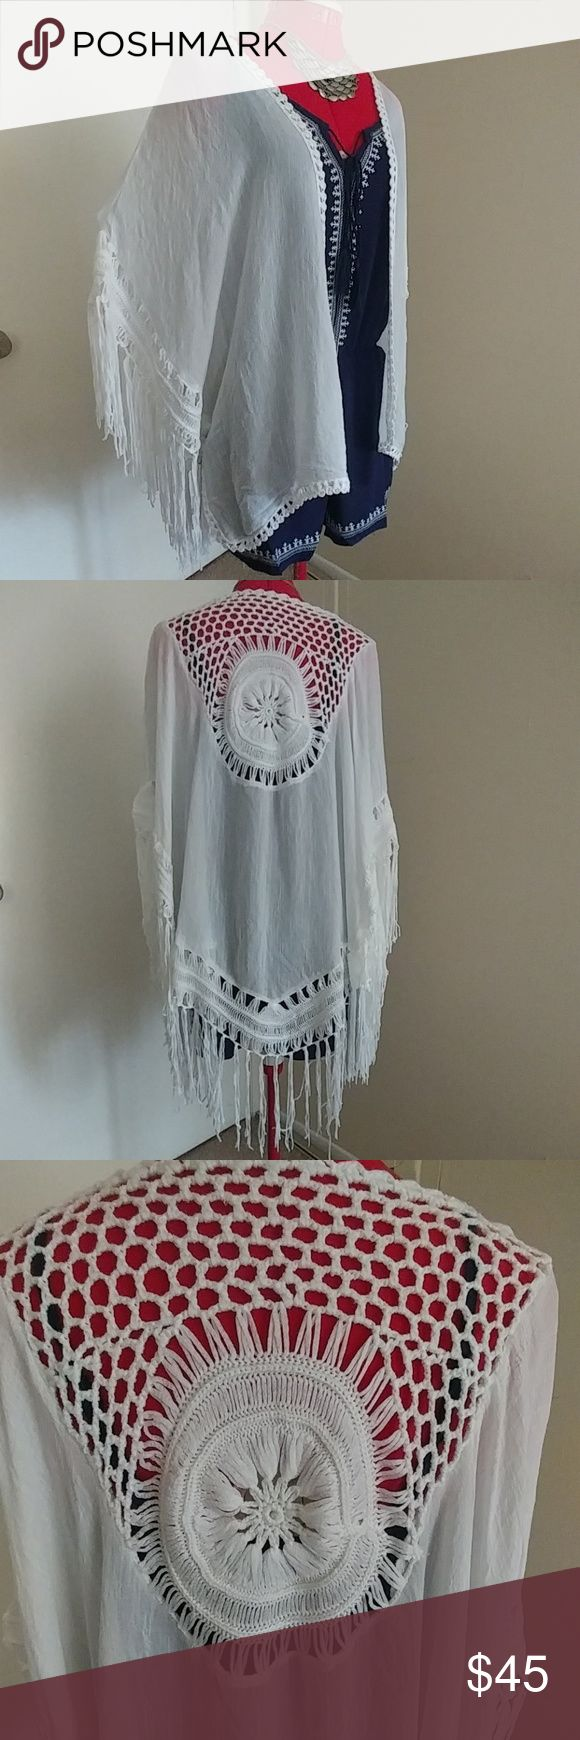 Fringed Kimono - Wrap Just in time for festival season! Beautiful fringed white kimono with crochet design on the back. 100% cotton. October Love Accessories Scarves & Wraps